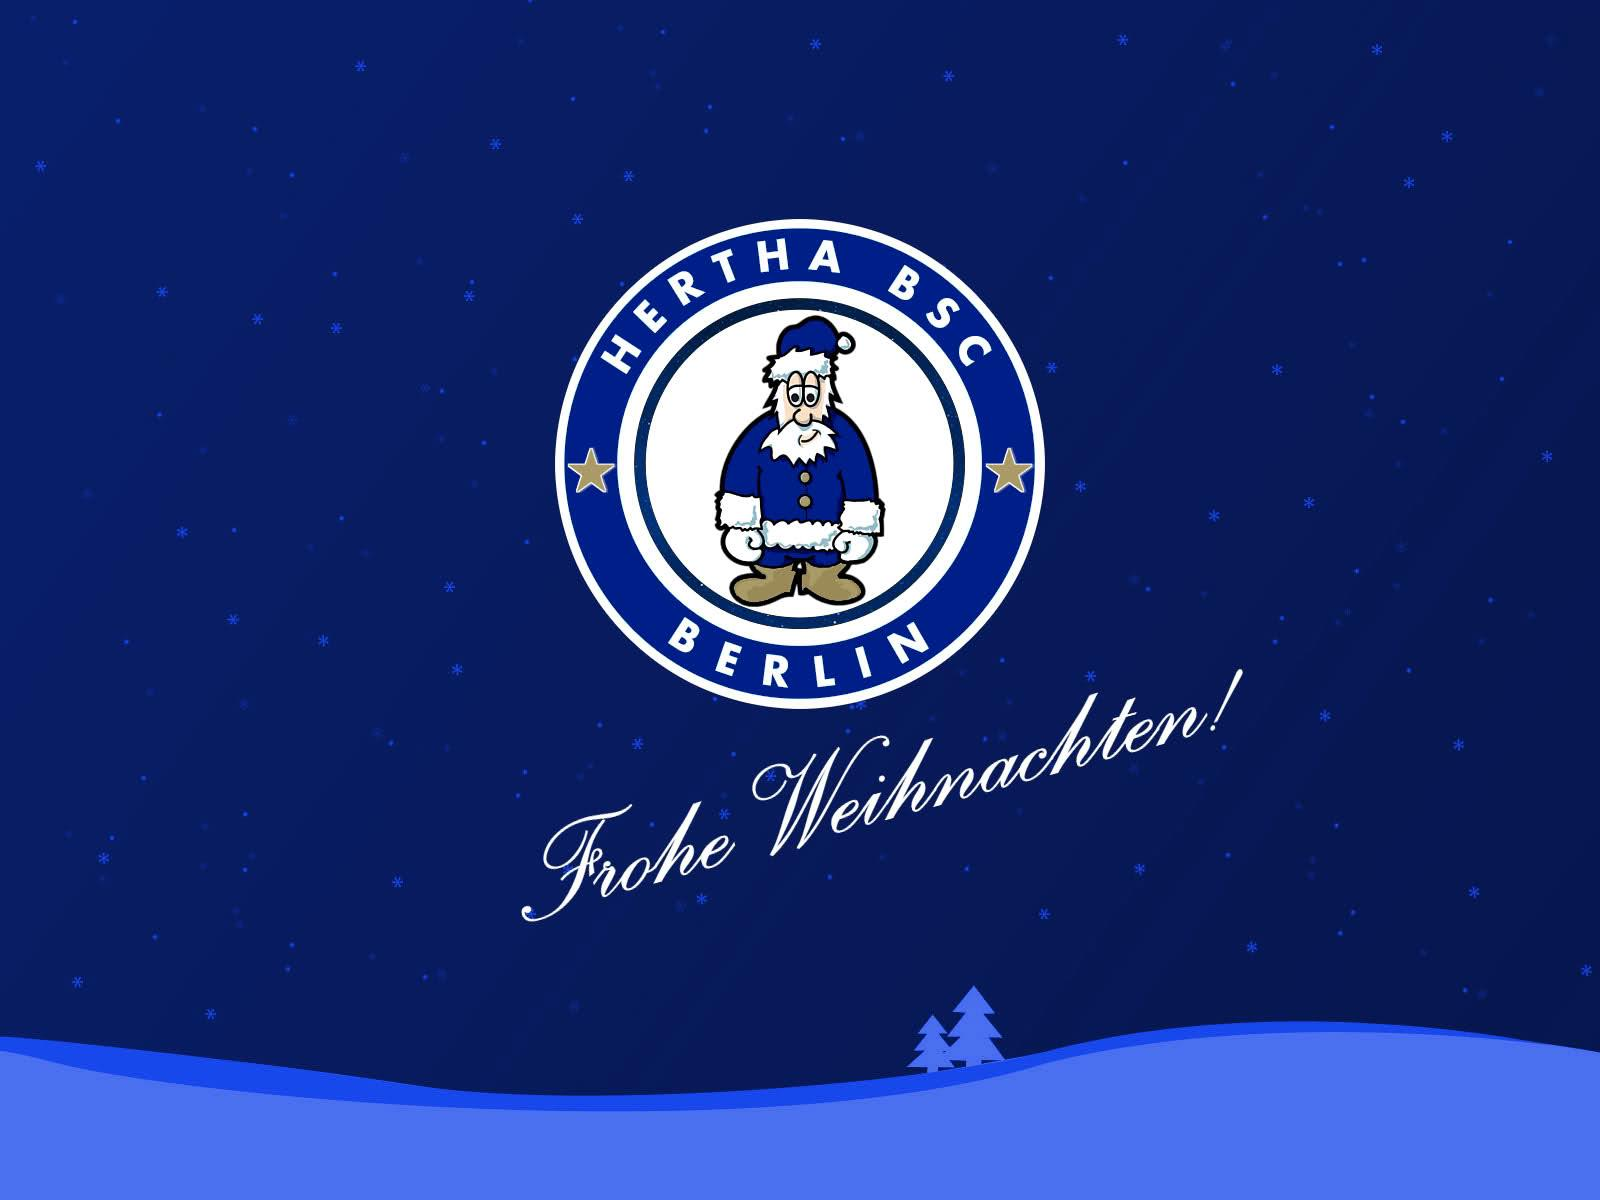 Hertha Berlin Wallpapers HD